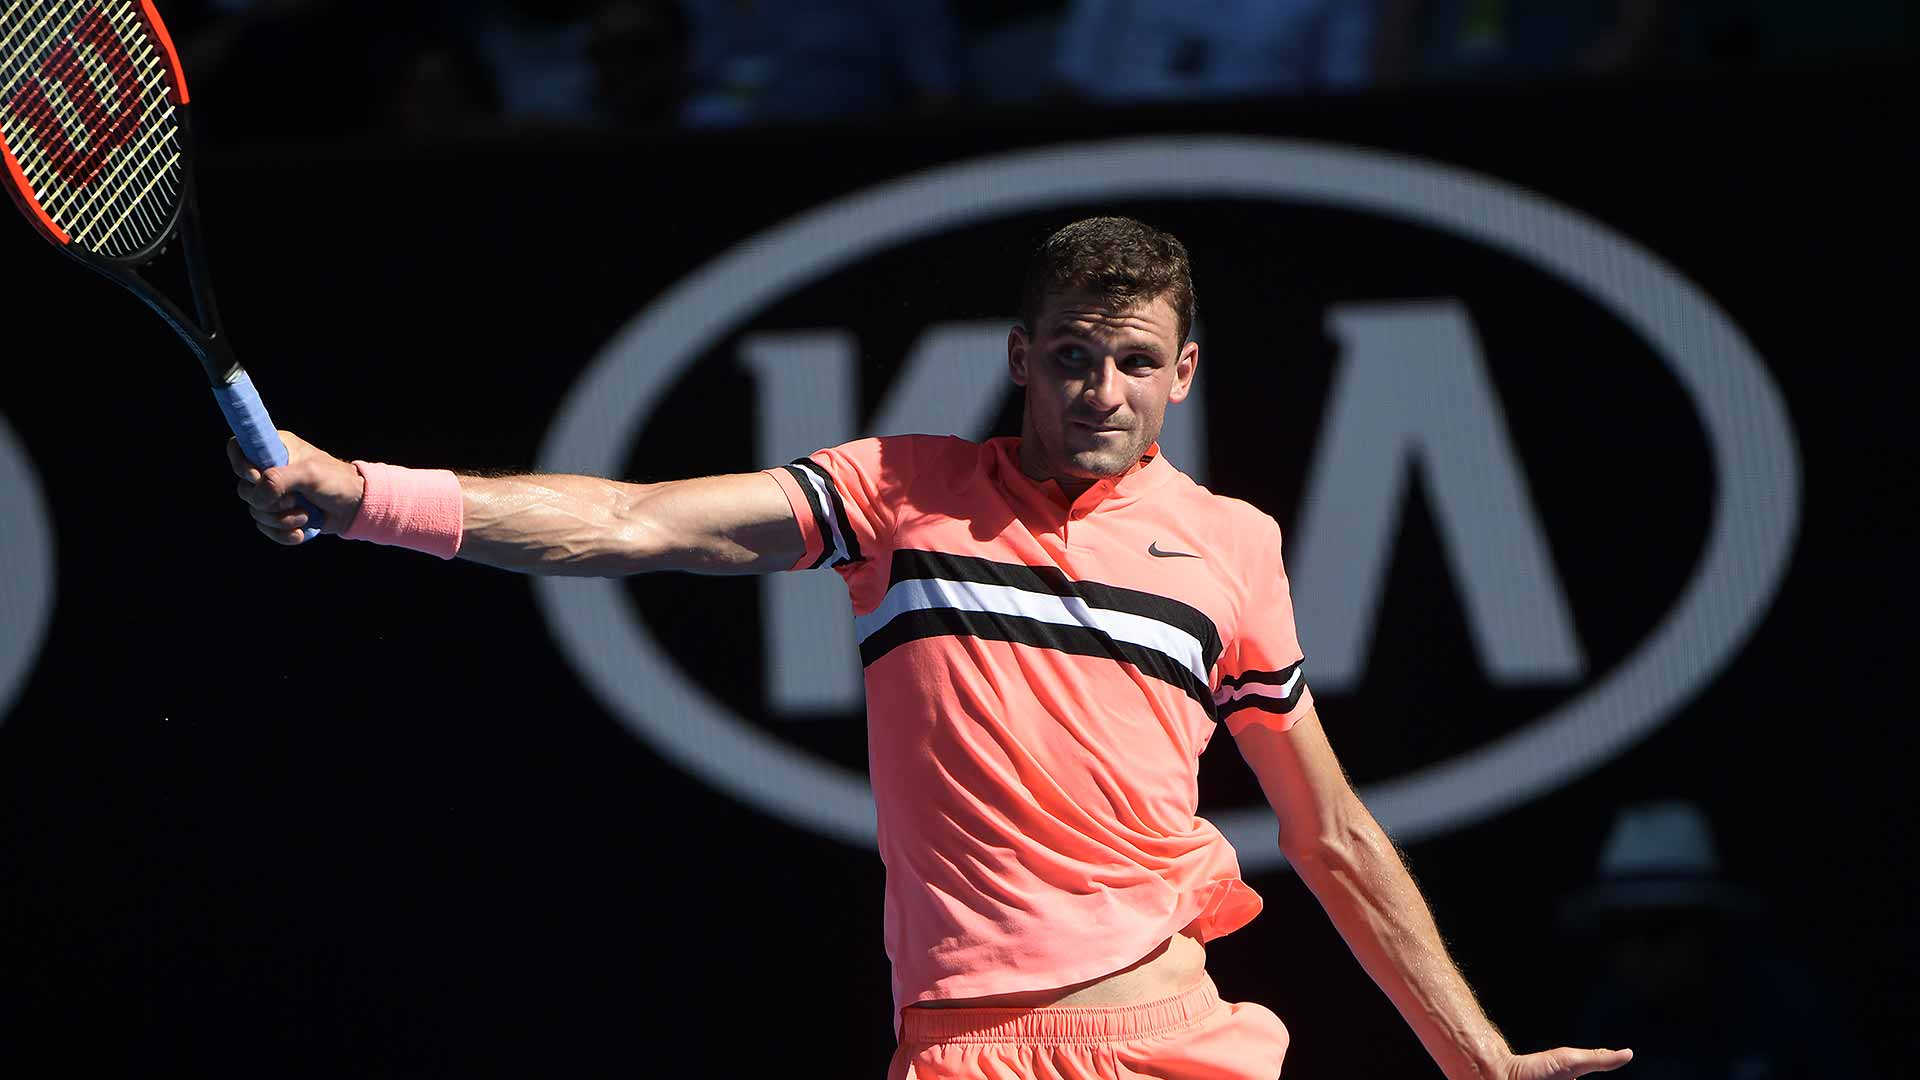 Send us your questions for Grigor Dimitrov! Use #AskDimitrov #ATP #AusOpen #Dimitrov #Tennis https://t.co/5rmvhtdqIf